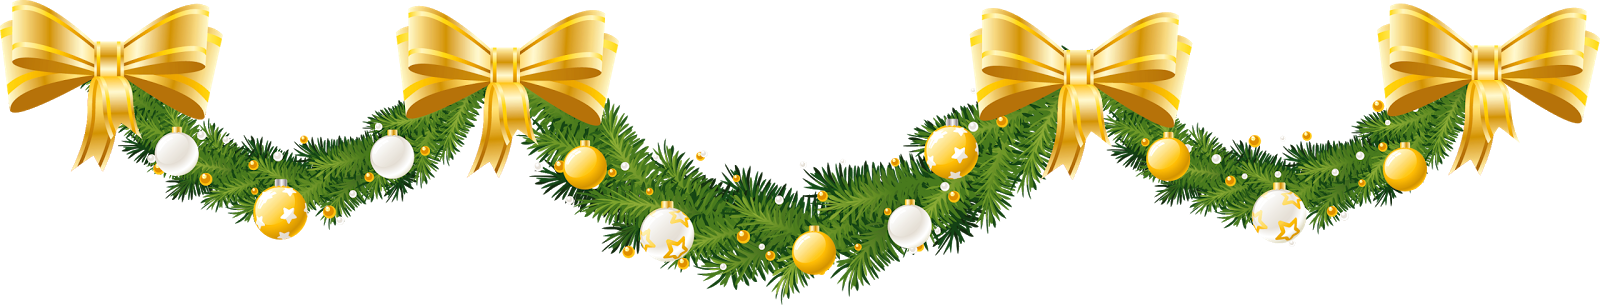 Christmas Decorations Clipart - Cliparts.co